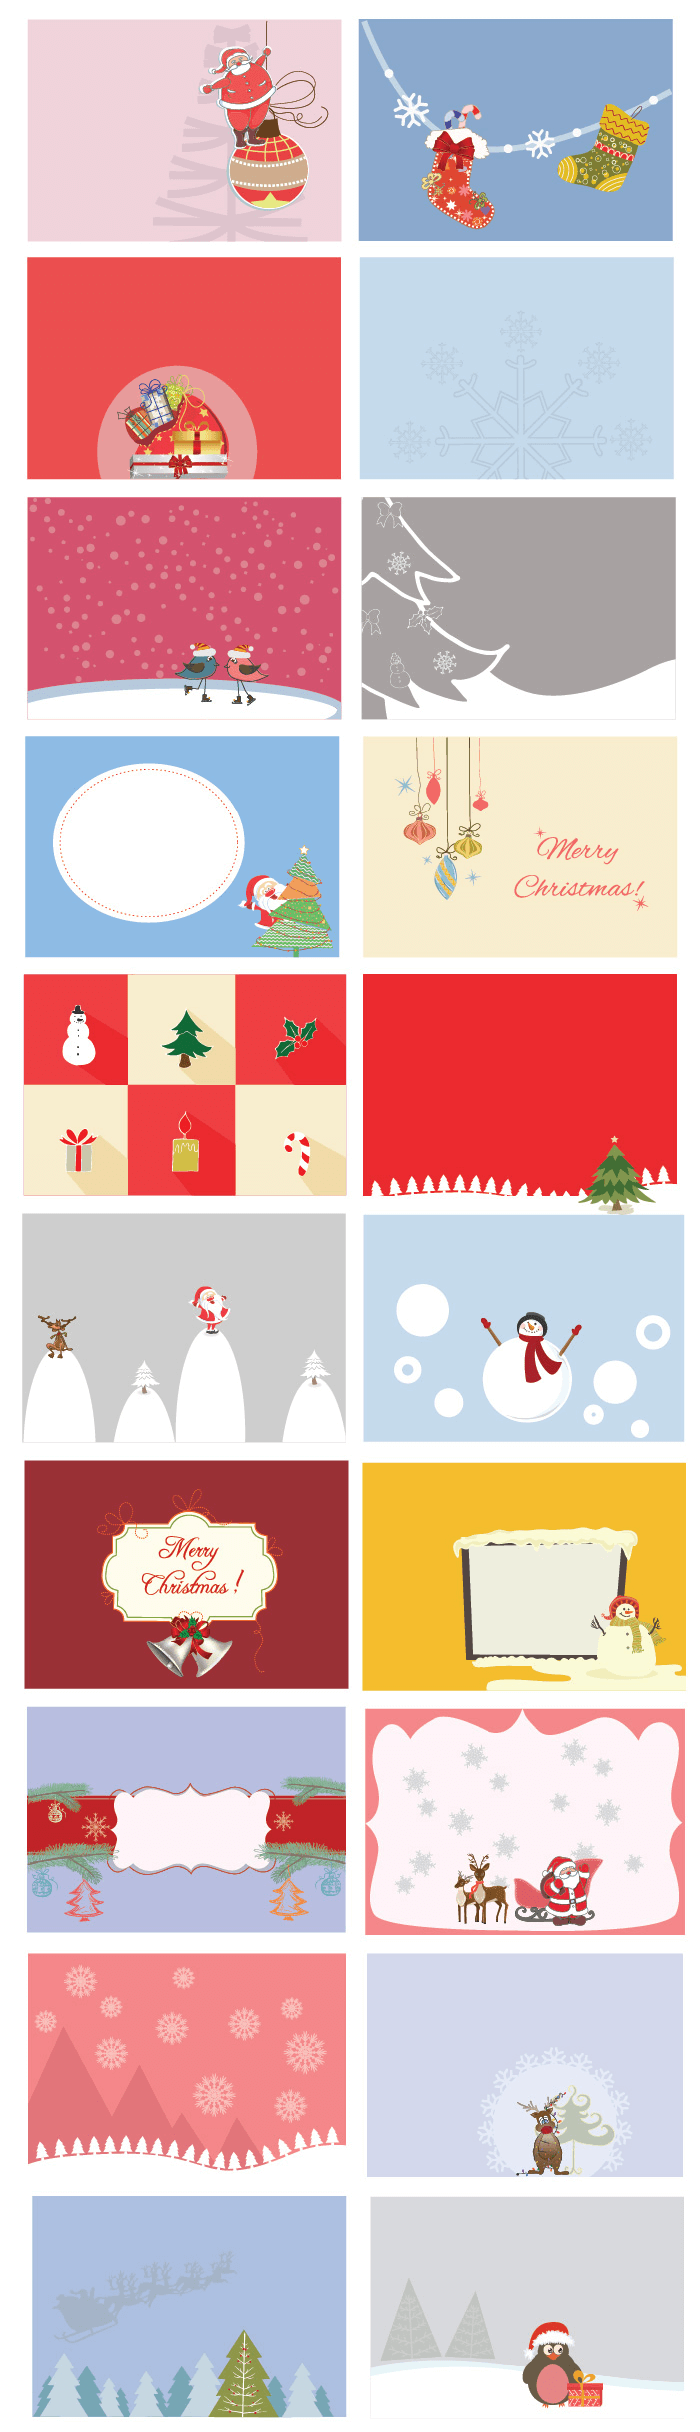 Images with New Year's gifts, Santa Claus and holiday socks emphasize the mood of winter.